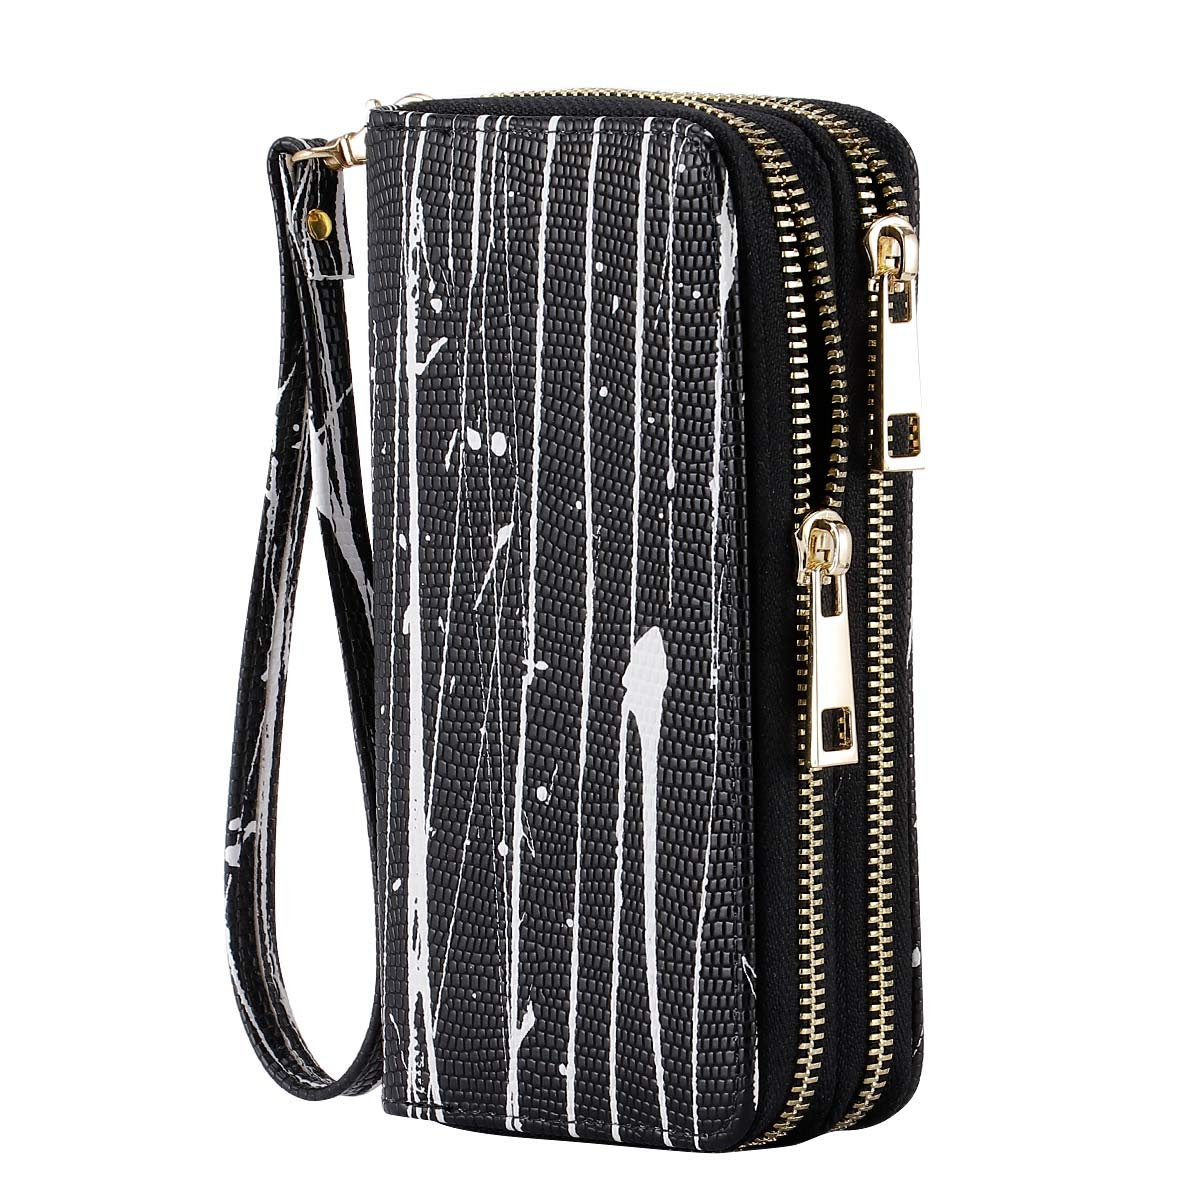 HAWEE Cellphone Wallet Dual Zipper Wristlet Purse with Credit Card Case/Coin Pouch/Smart Phone Pocket Soft Leather for Women or Lady, Graffiti Black